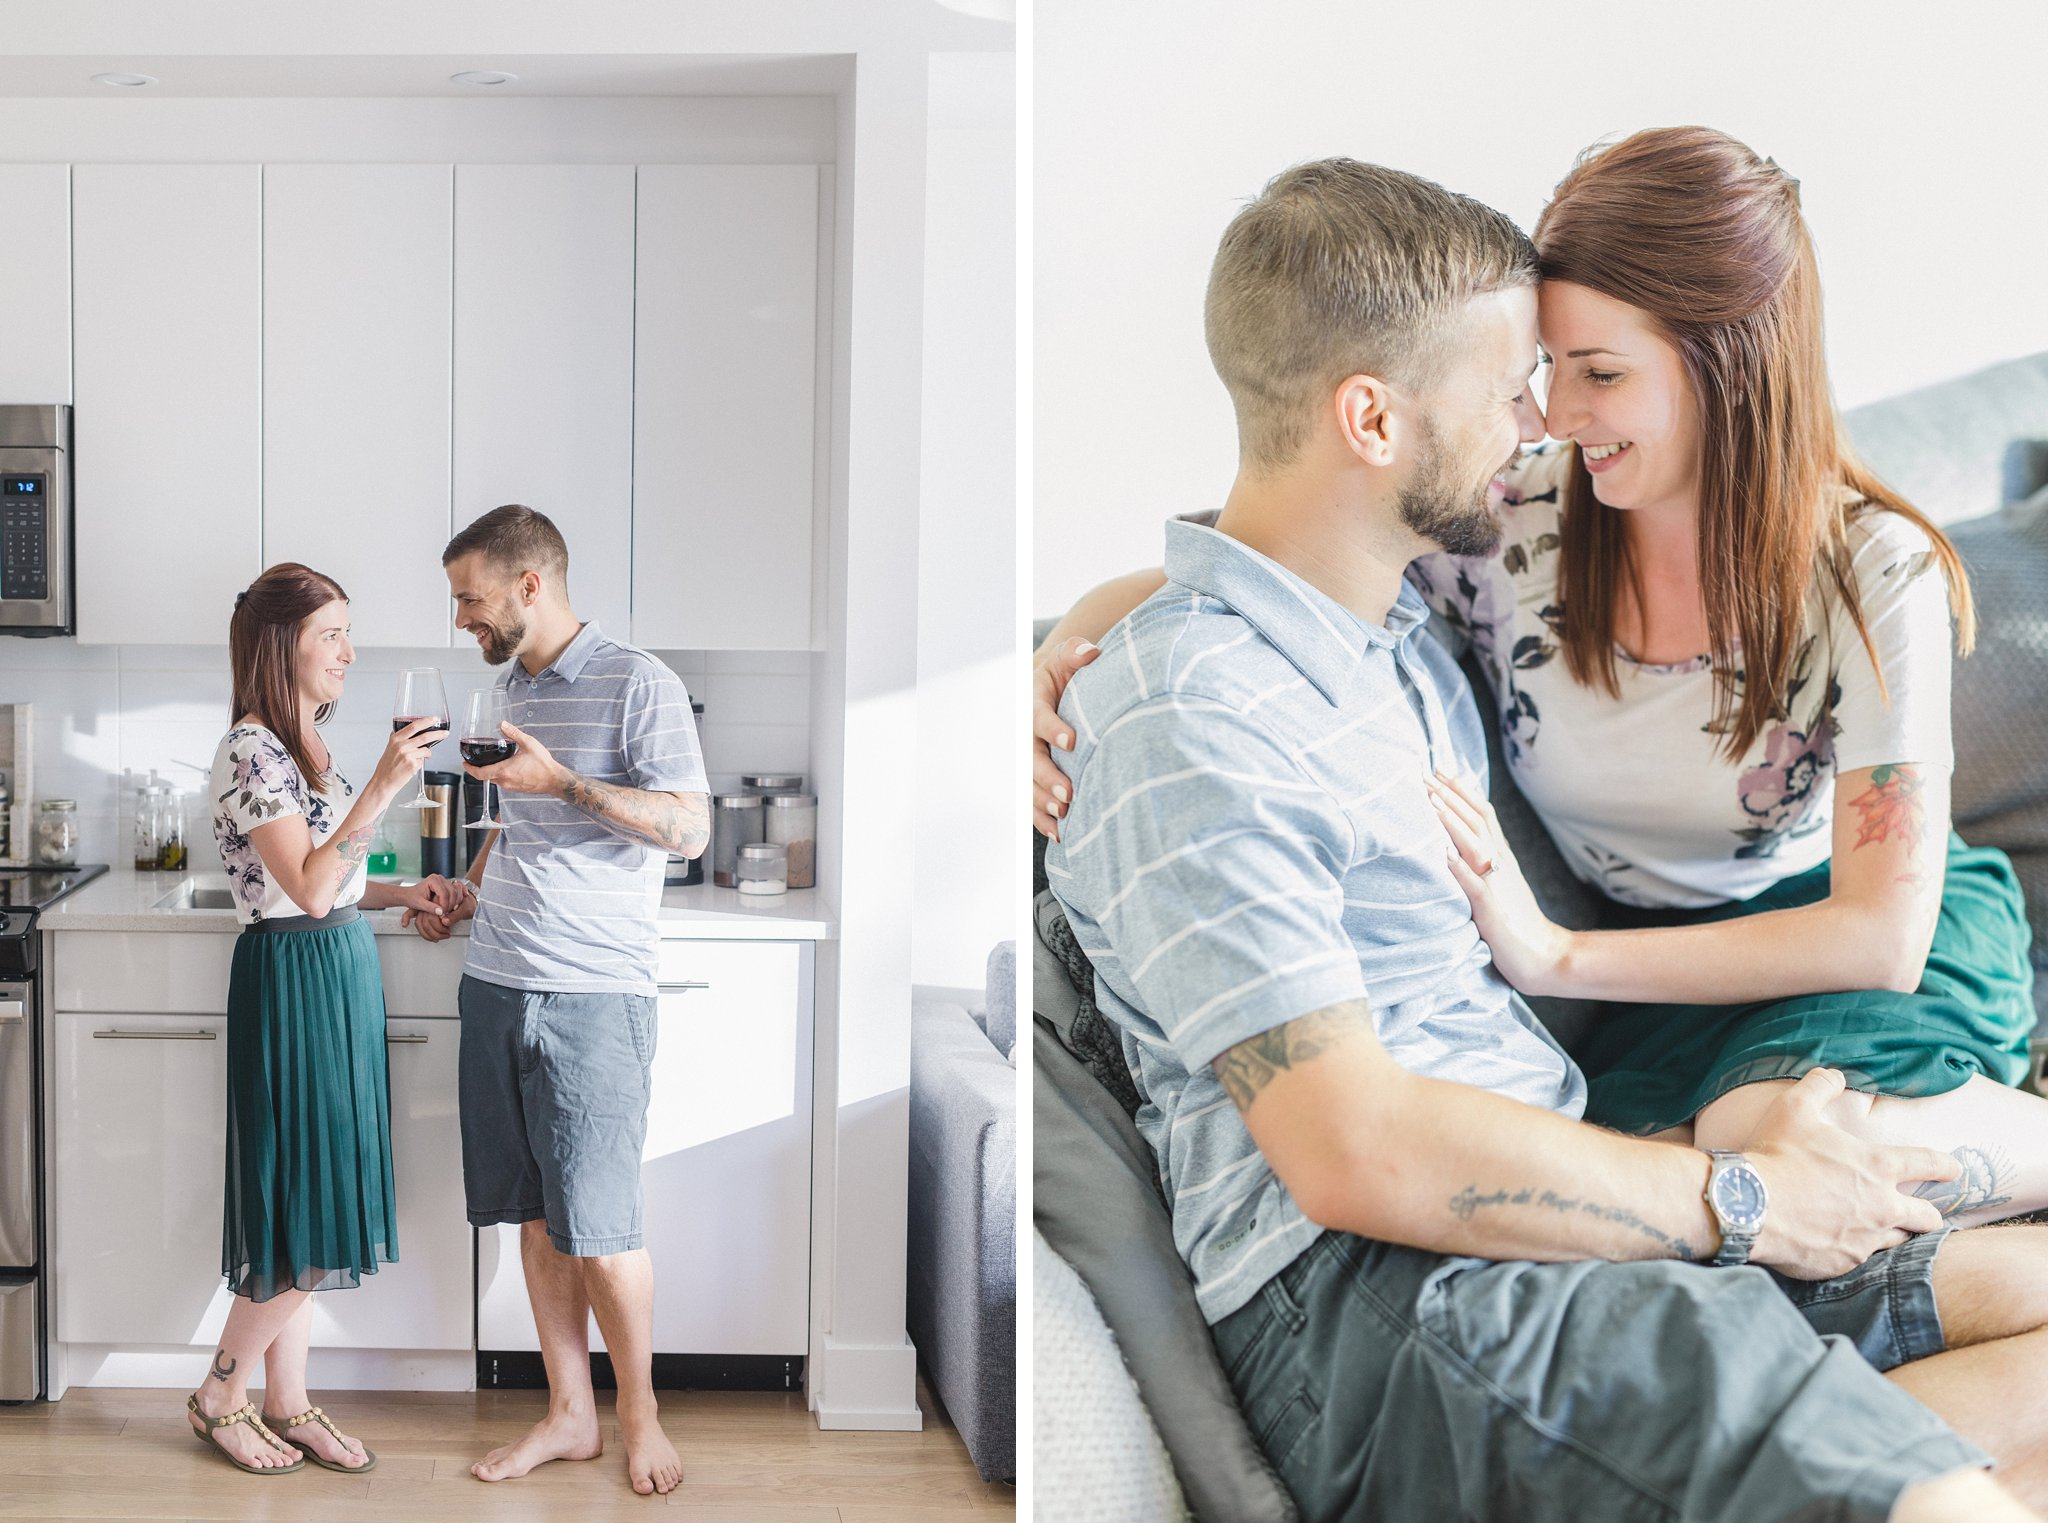 Lifestyle home condo engagement photos Hintonburg Ottawa